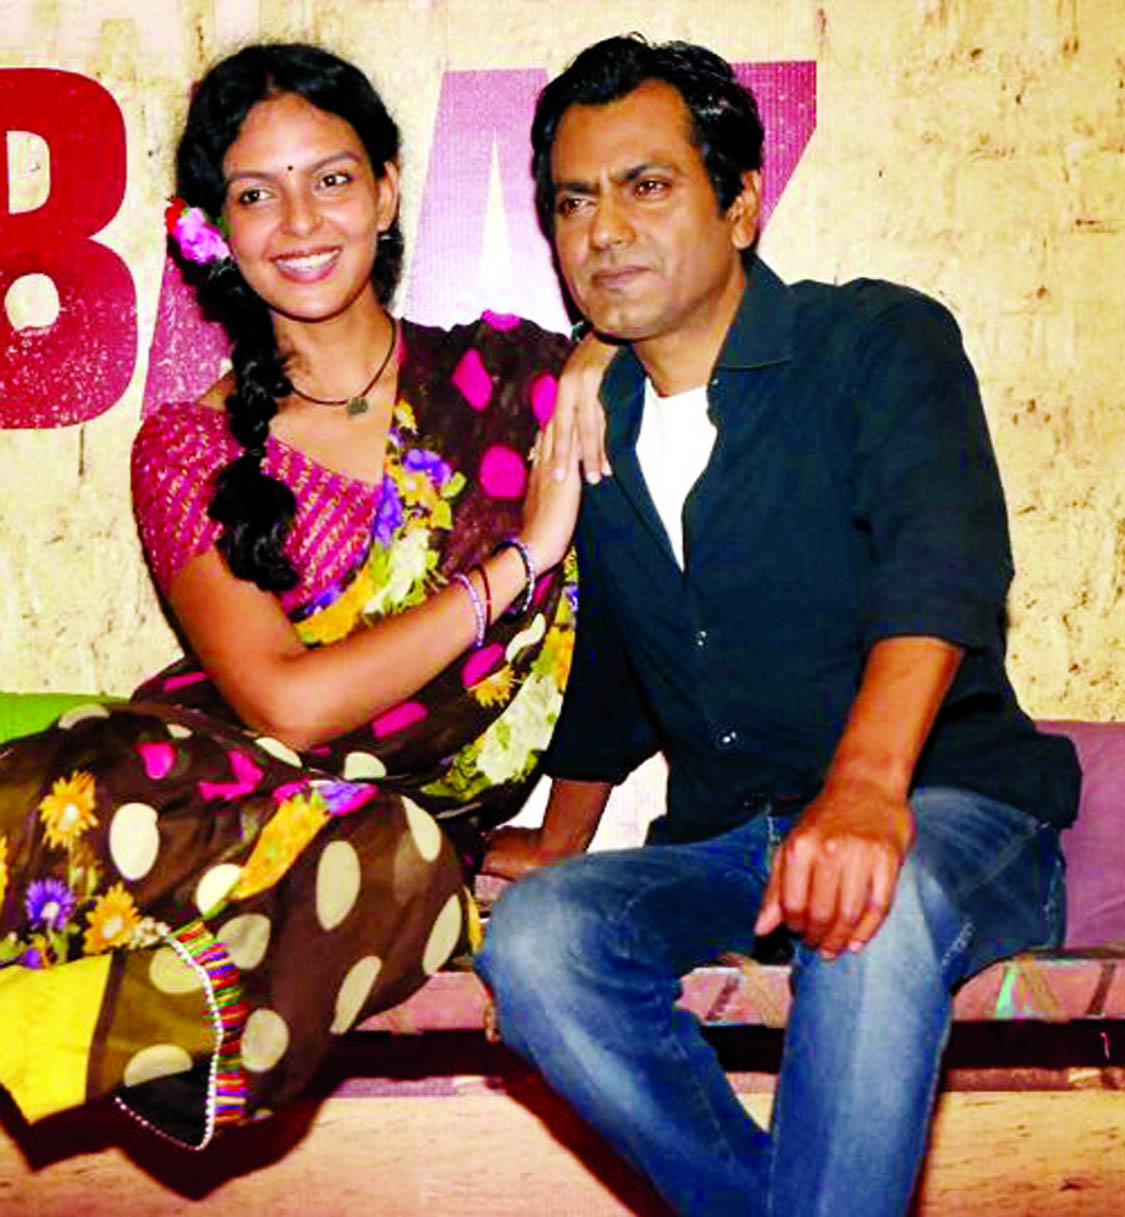 Babumoshai Bandookbaaz deals with uncomfortable truths, says writer